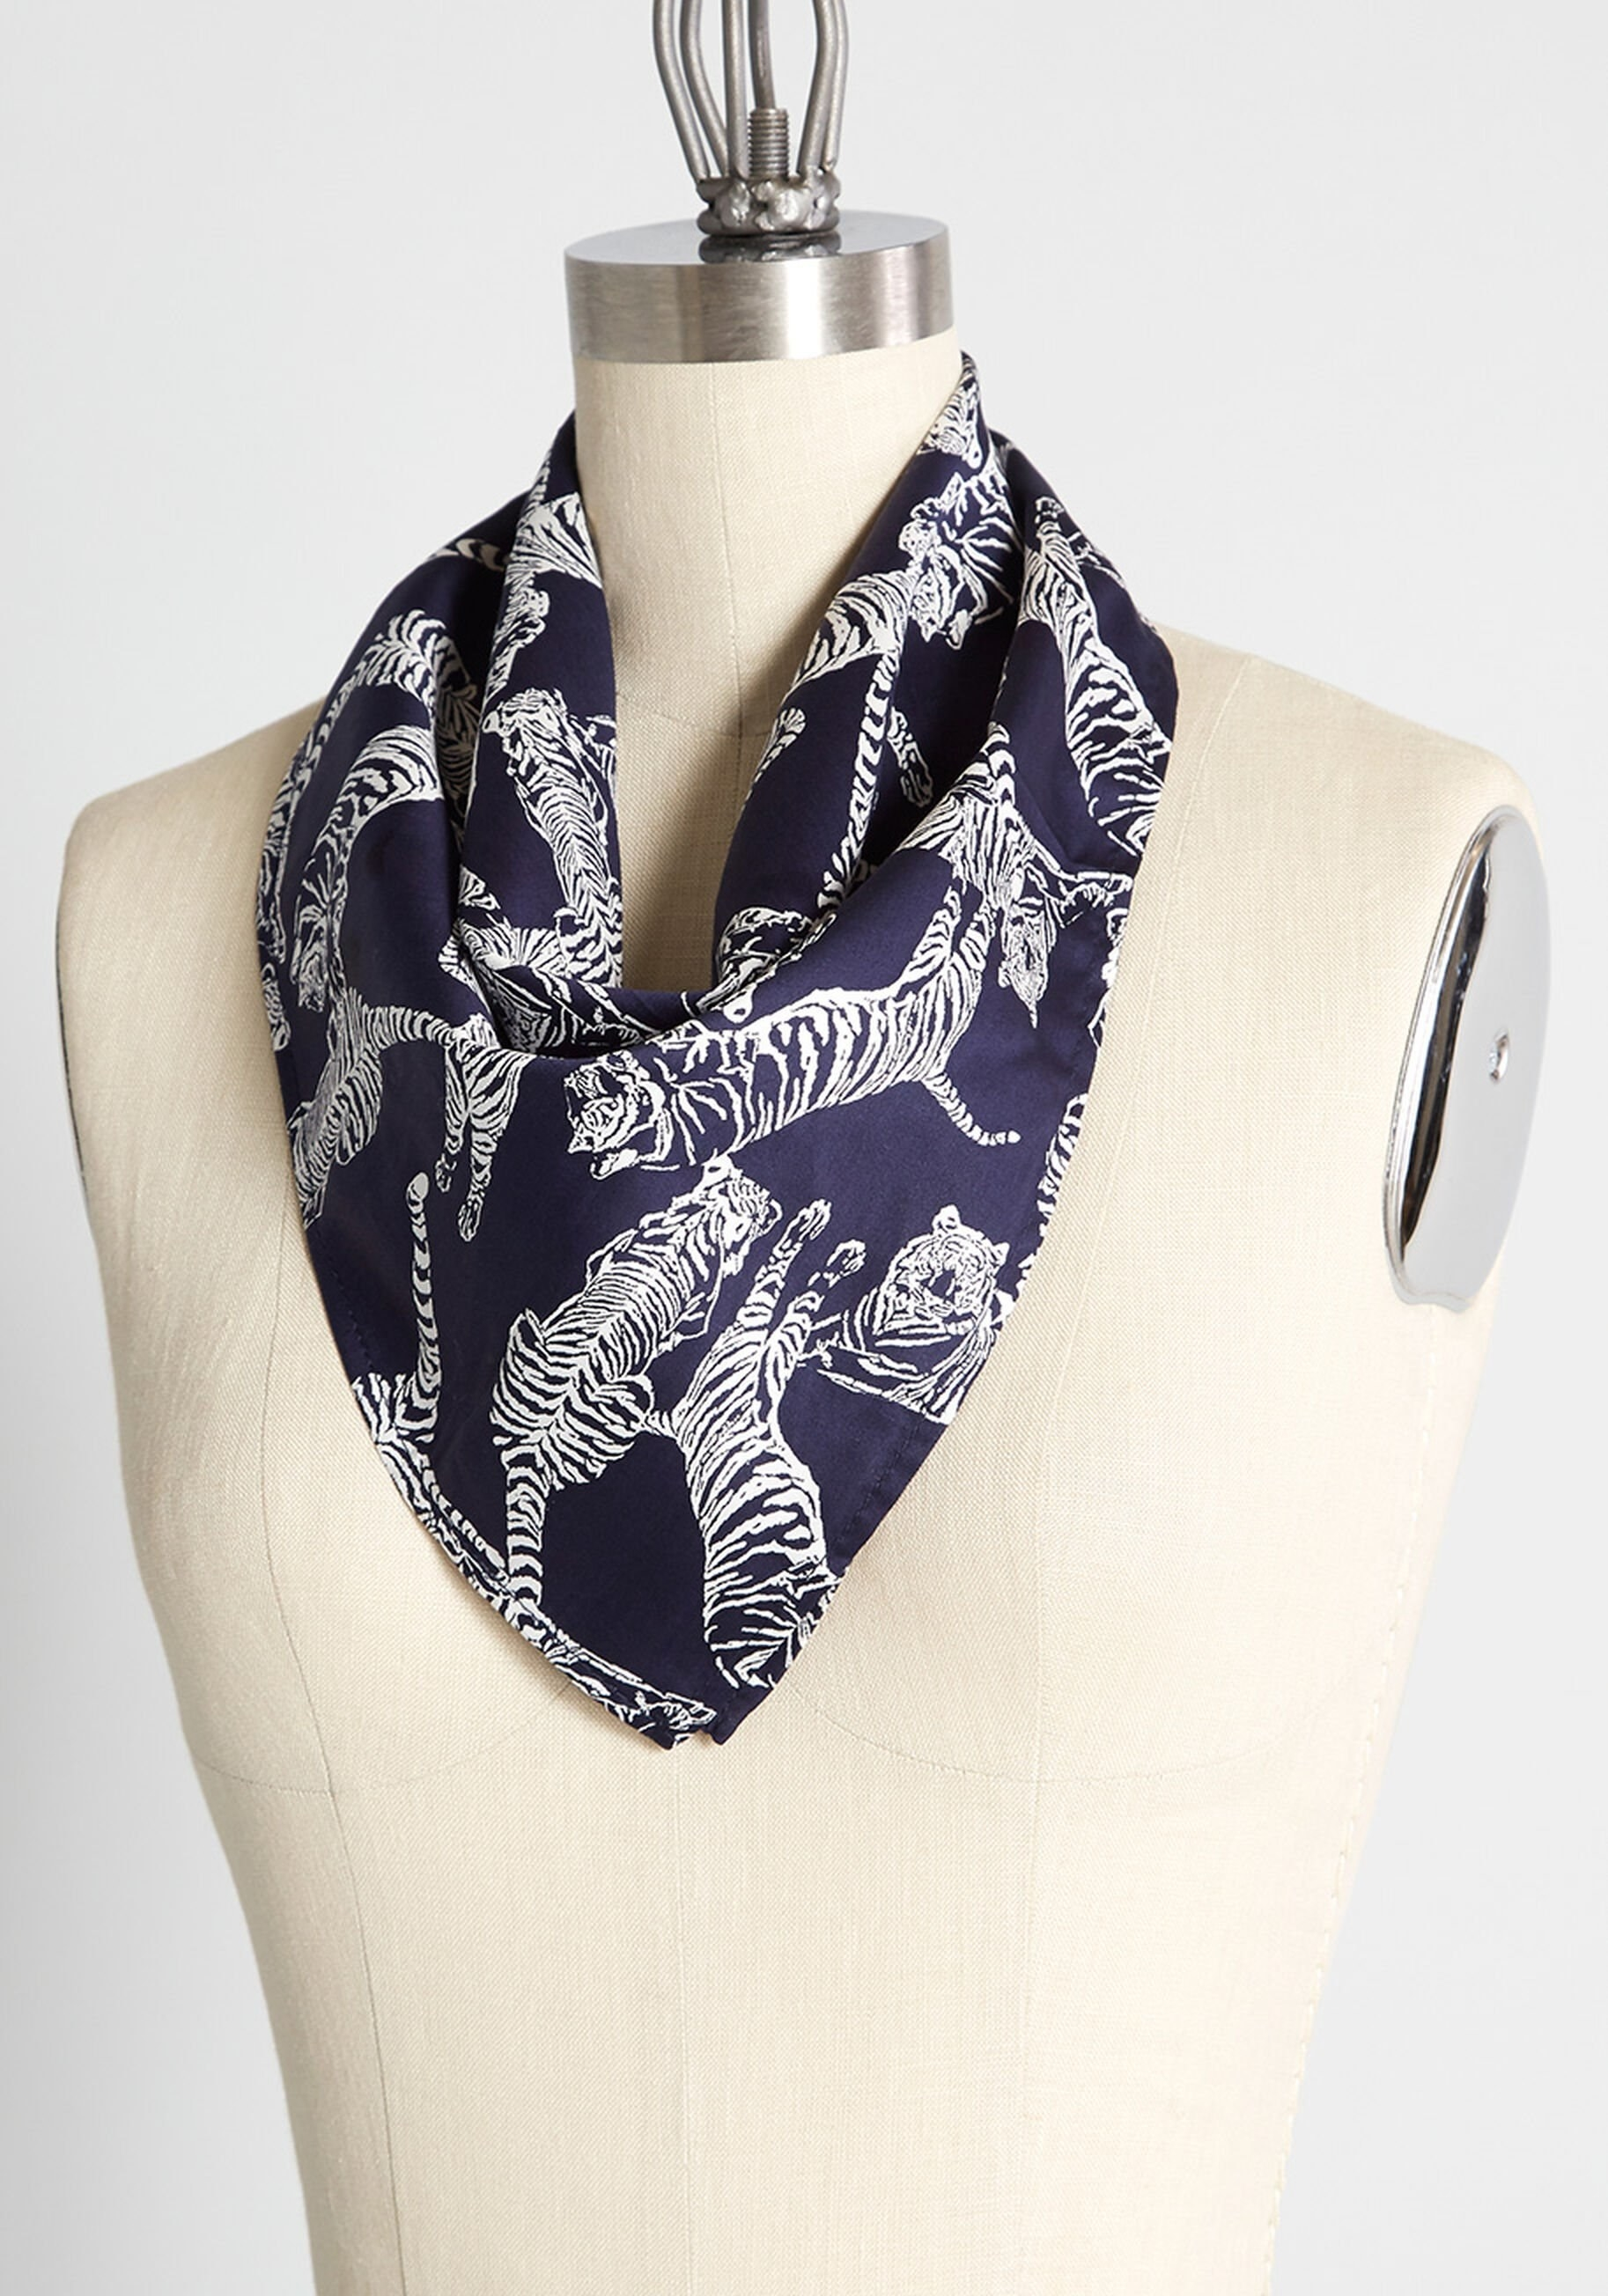 a navy bandana with white illustrations of tigers on it